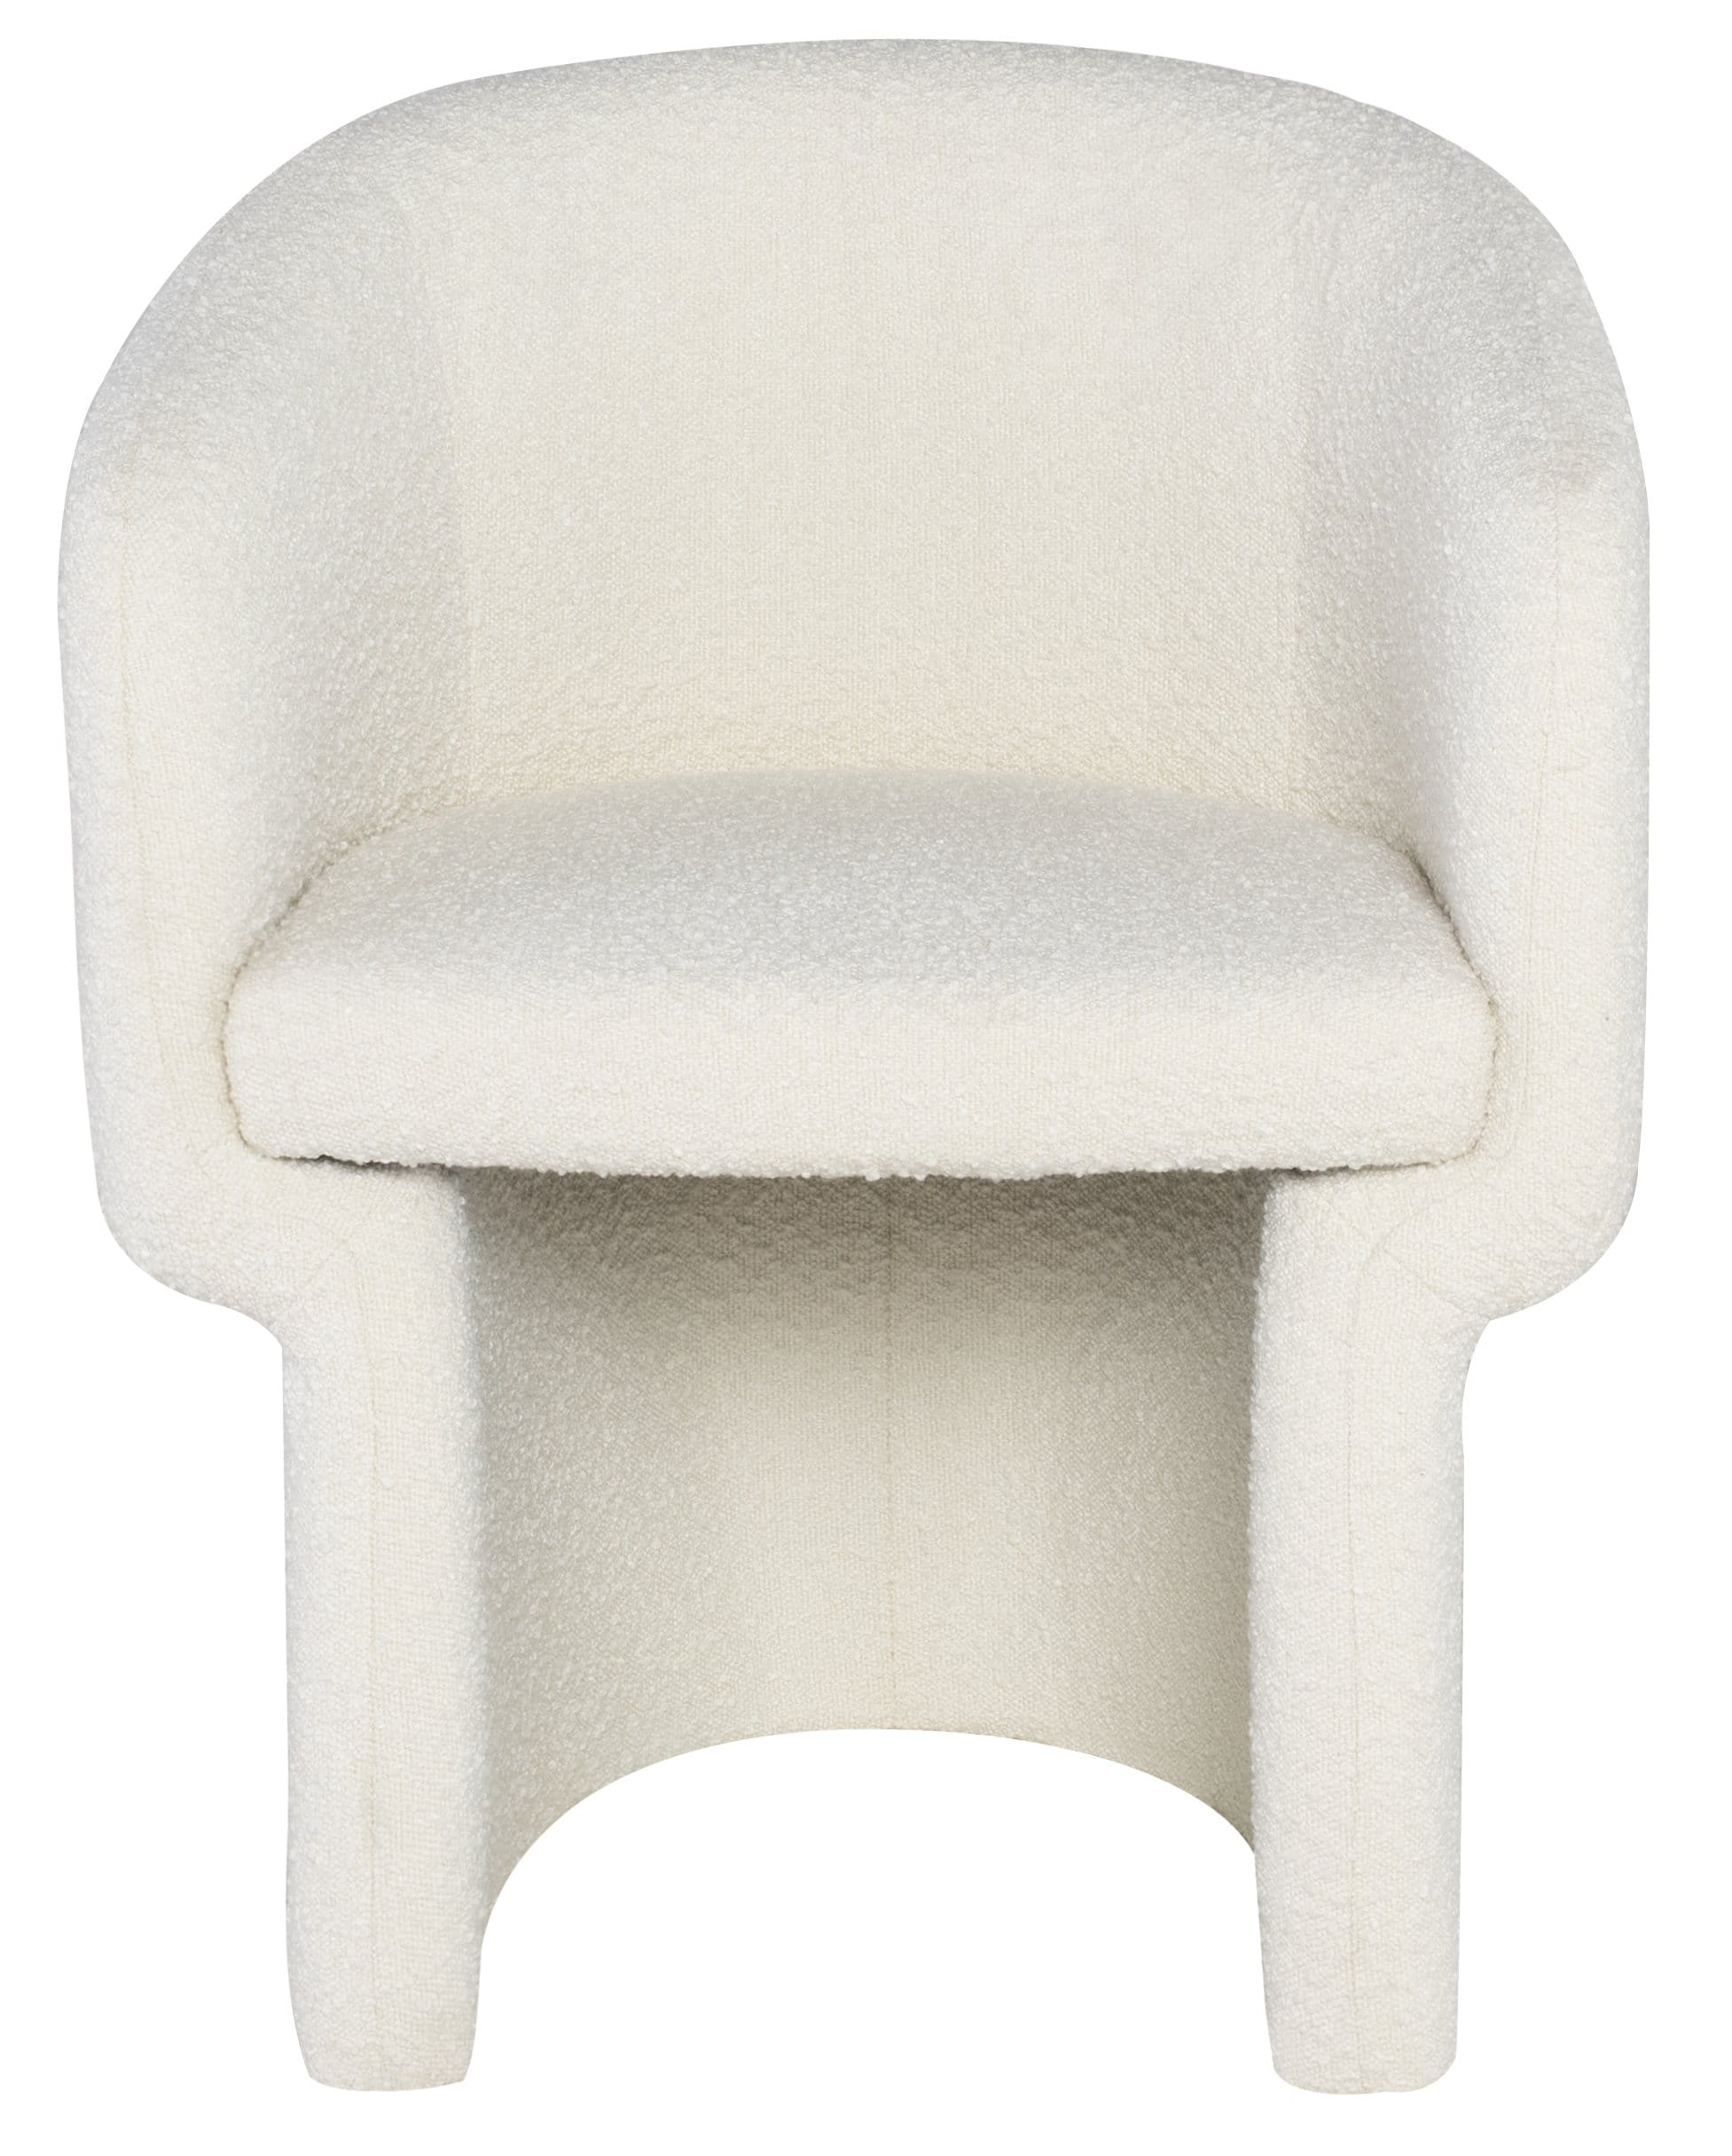 Nuevo Nuevo Clementine Dining Chair - Buttermilk Boucle HGSN146